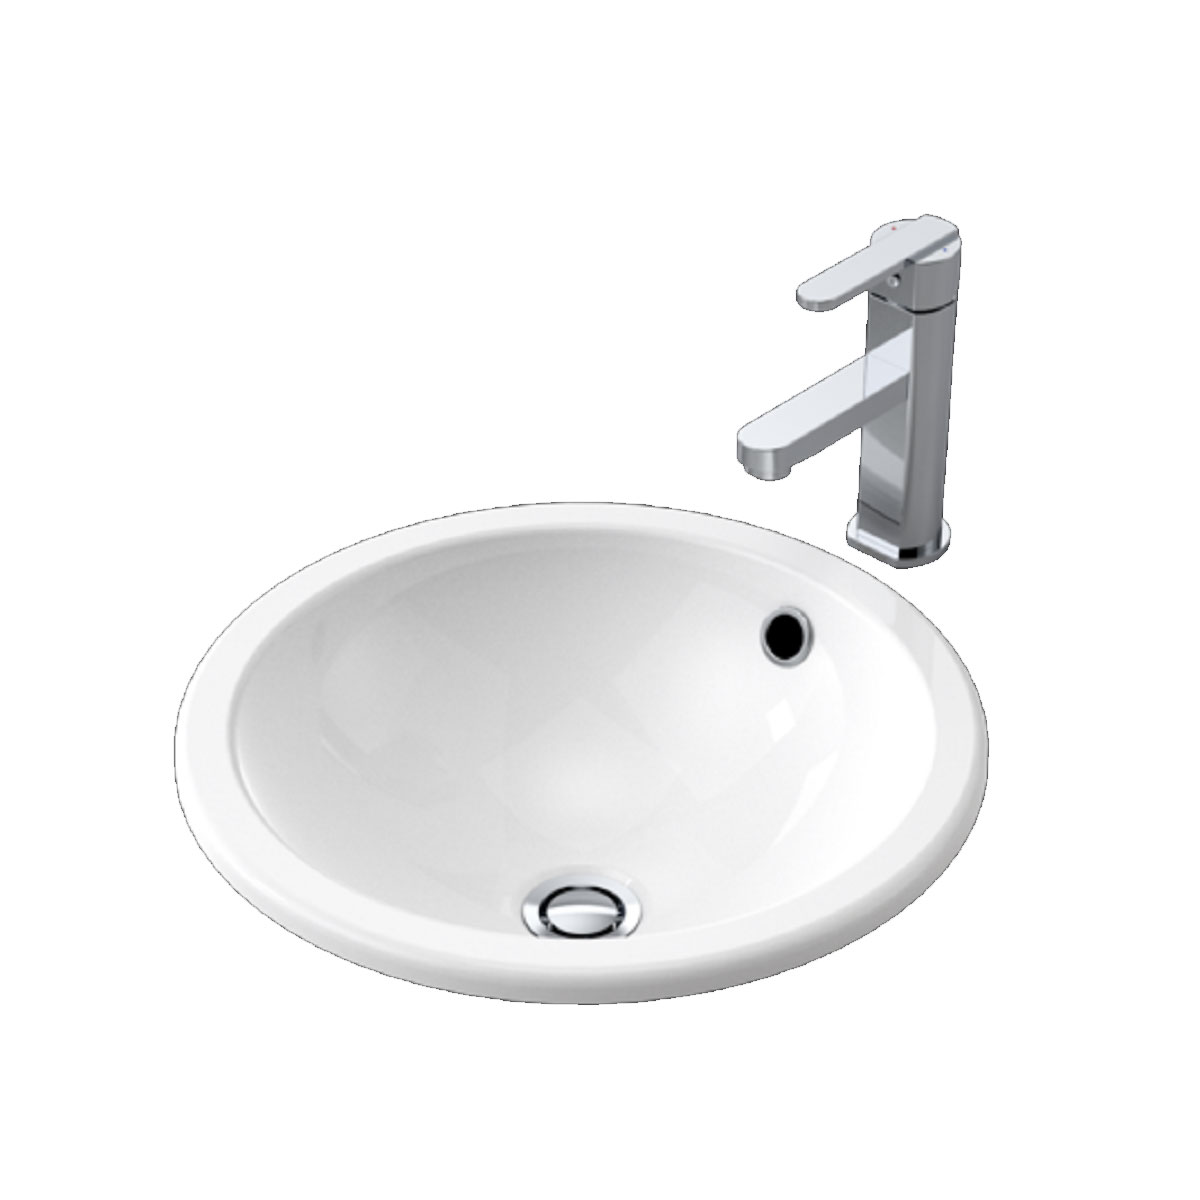 Caroma Cosmo Under / Over Counter Basin 895005W